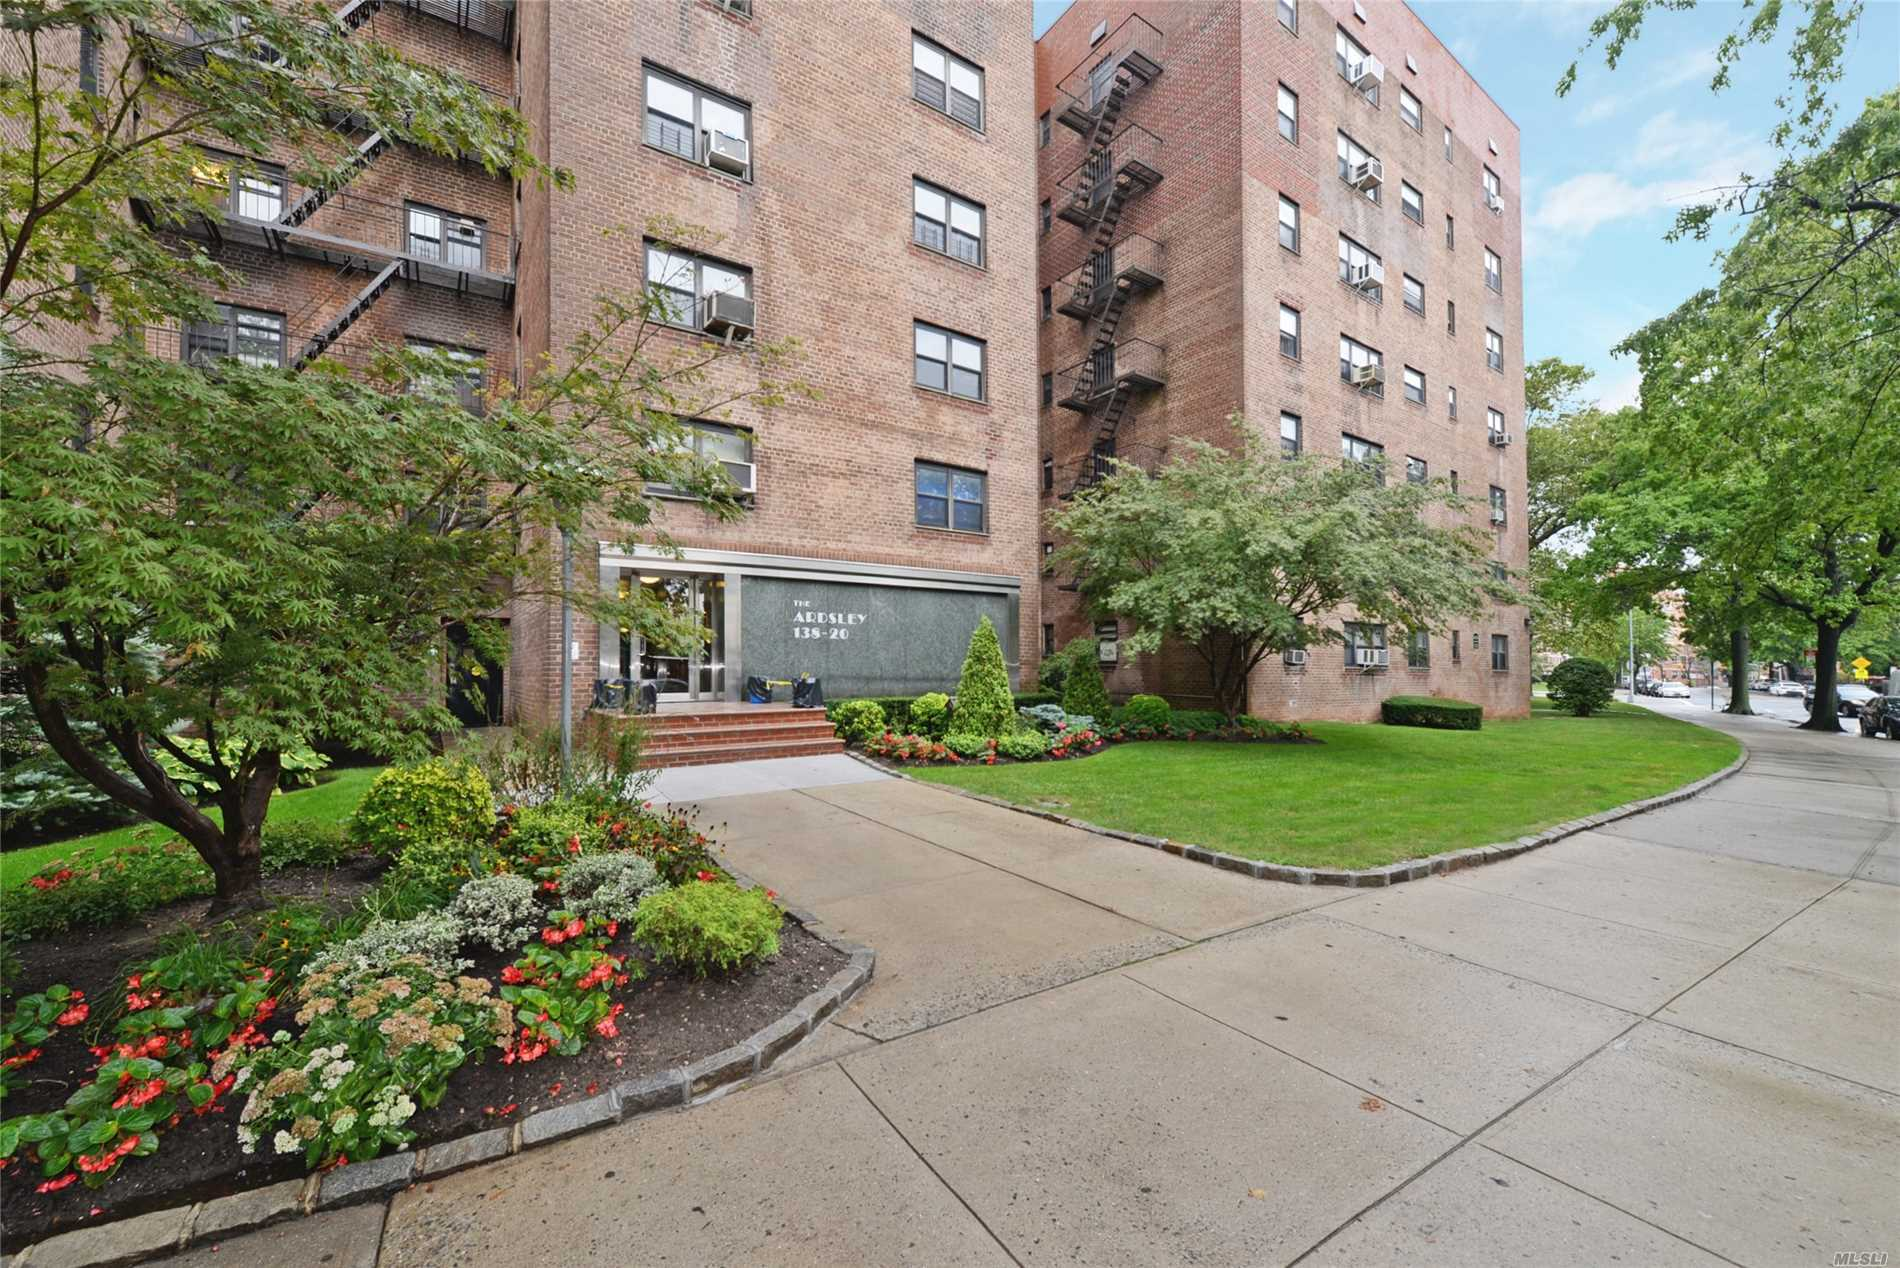 Sale May Be Subject To Term & Conditions Of An Offering Plan.Large One Bedroom Coop Unit Located On Prime N. Flushing On Quietest Block, Well Maintenance Elevator Building , All Window In Bathroom And Kitchen,